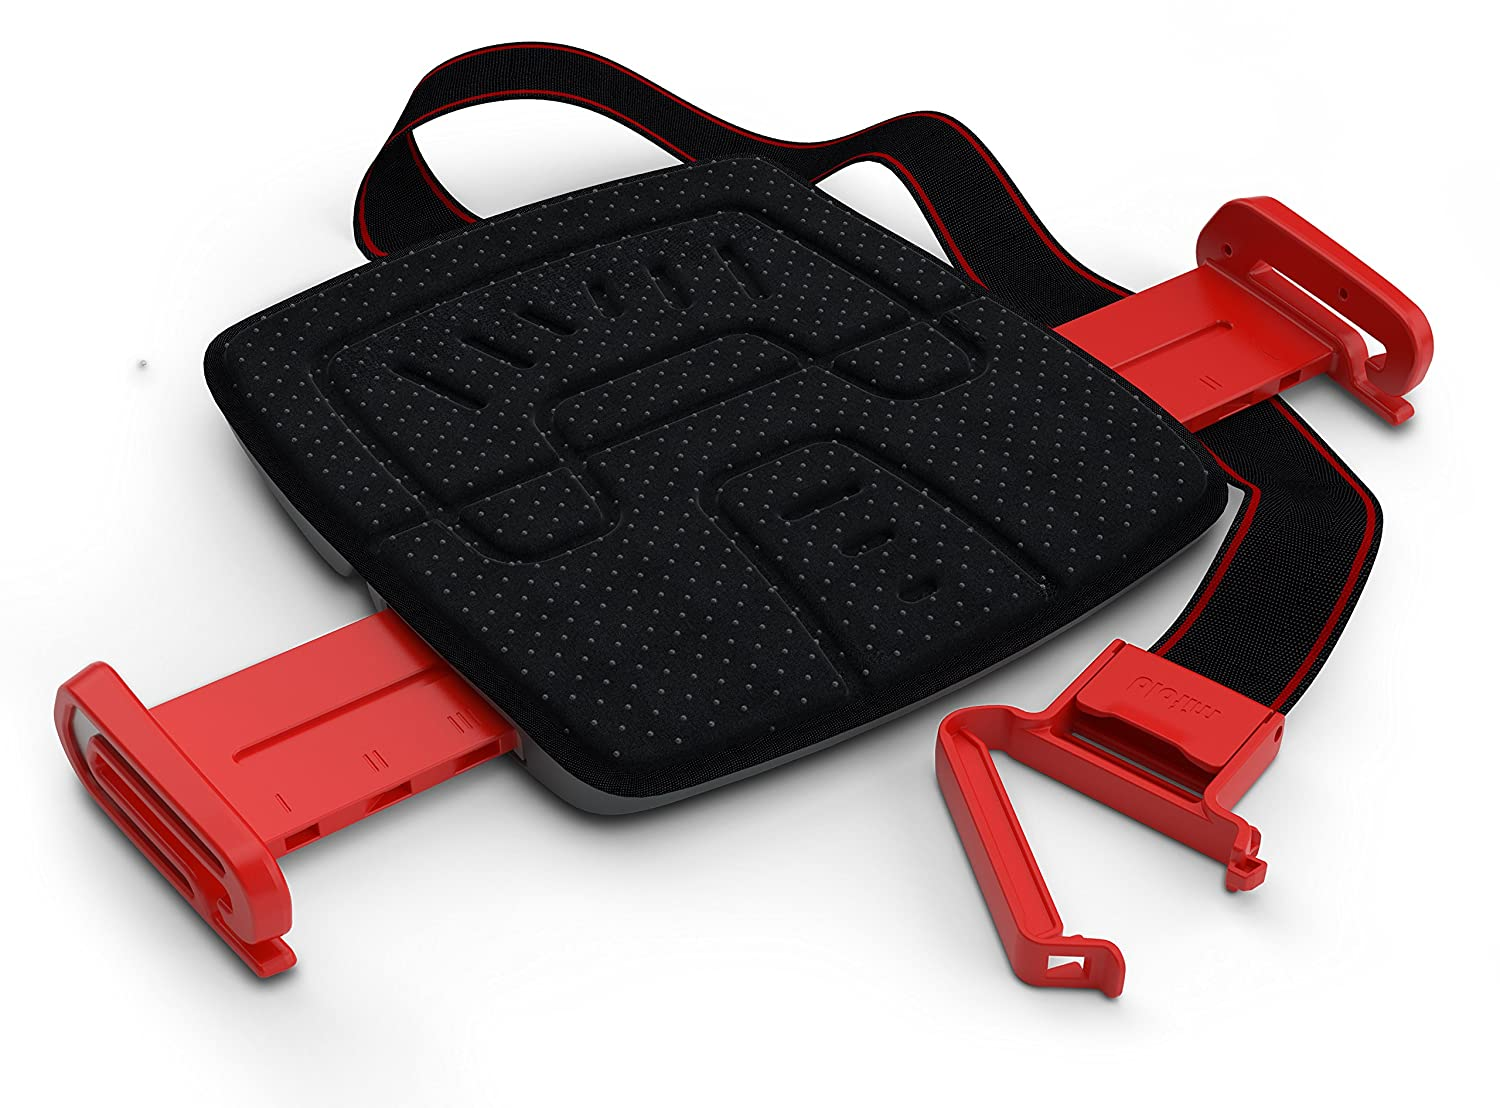 Mifold Grab-and-Go Backless Booster Seat Review